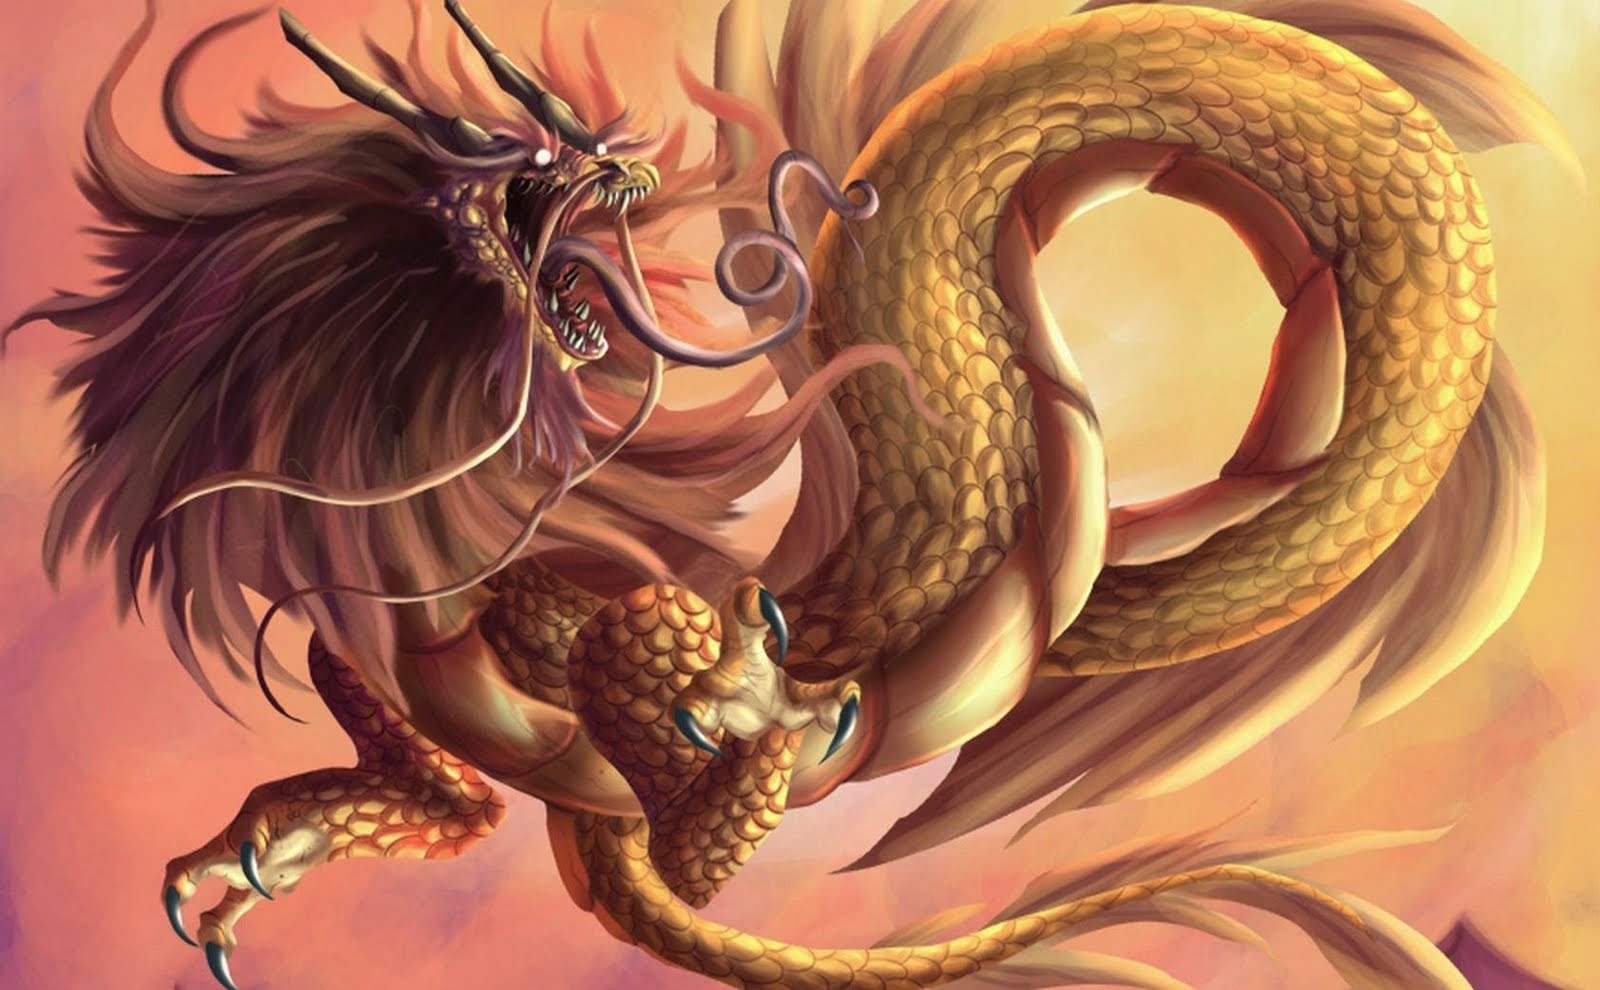 Wonderful   Wallpaper Horse Dragon - Cool-Chinese+Dragon+Wallpaper+HD+background+HD  Pic_128481.jpg